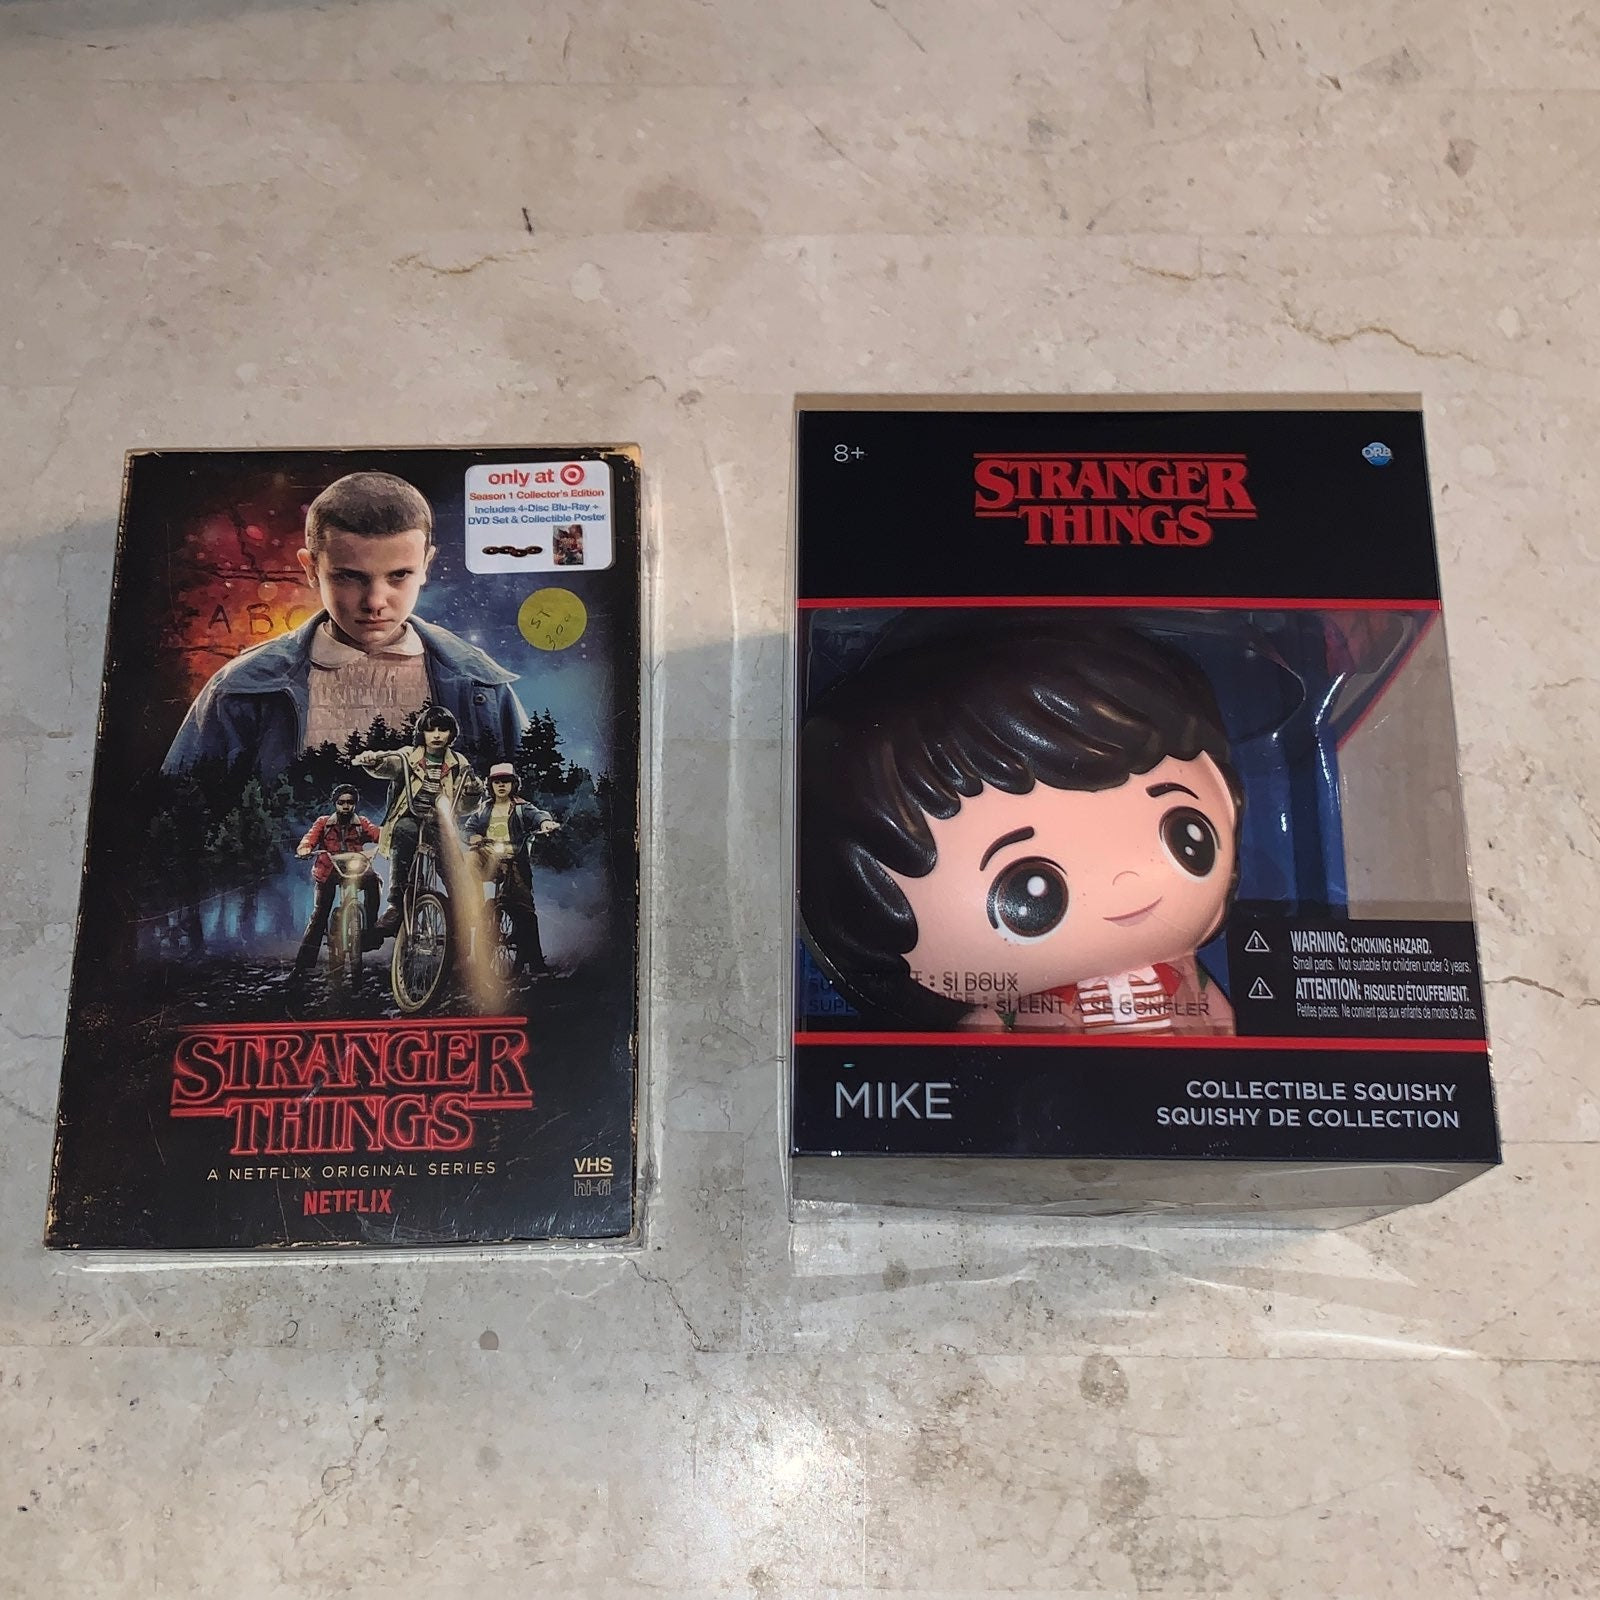 Stranger Things S1 with MIKE Collectible